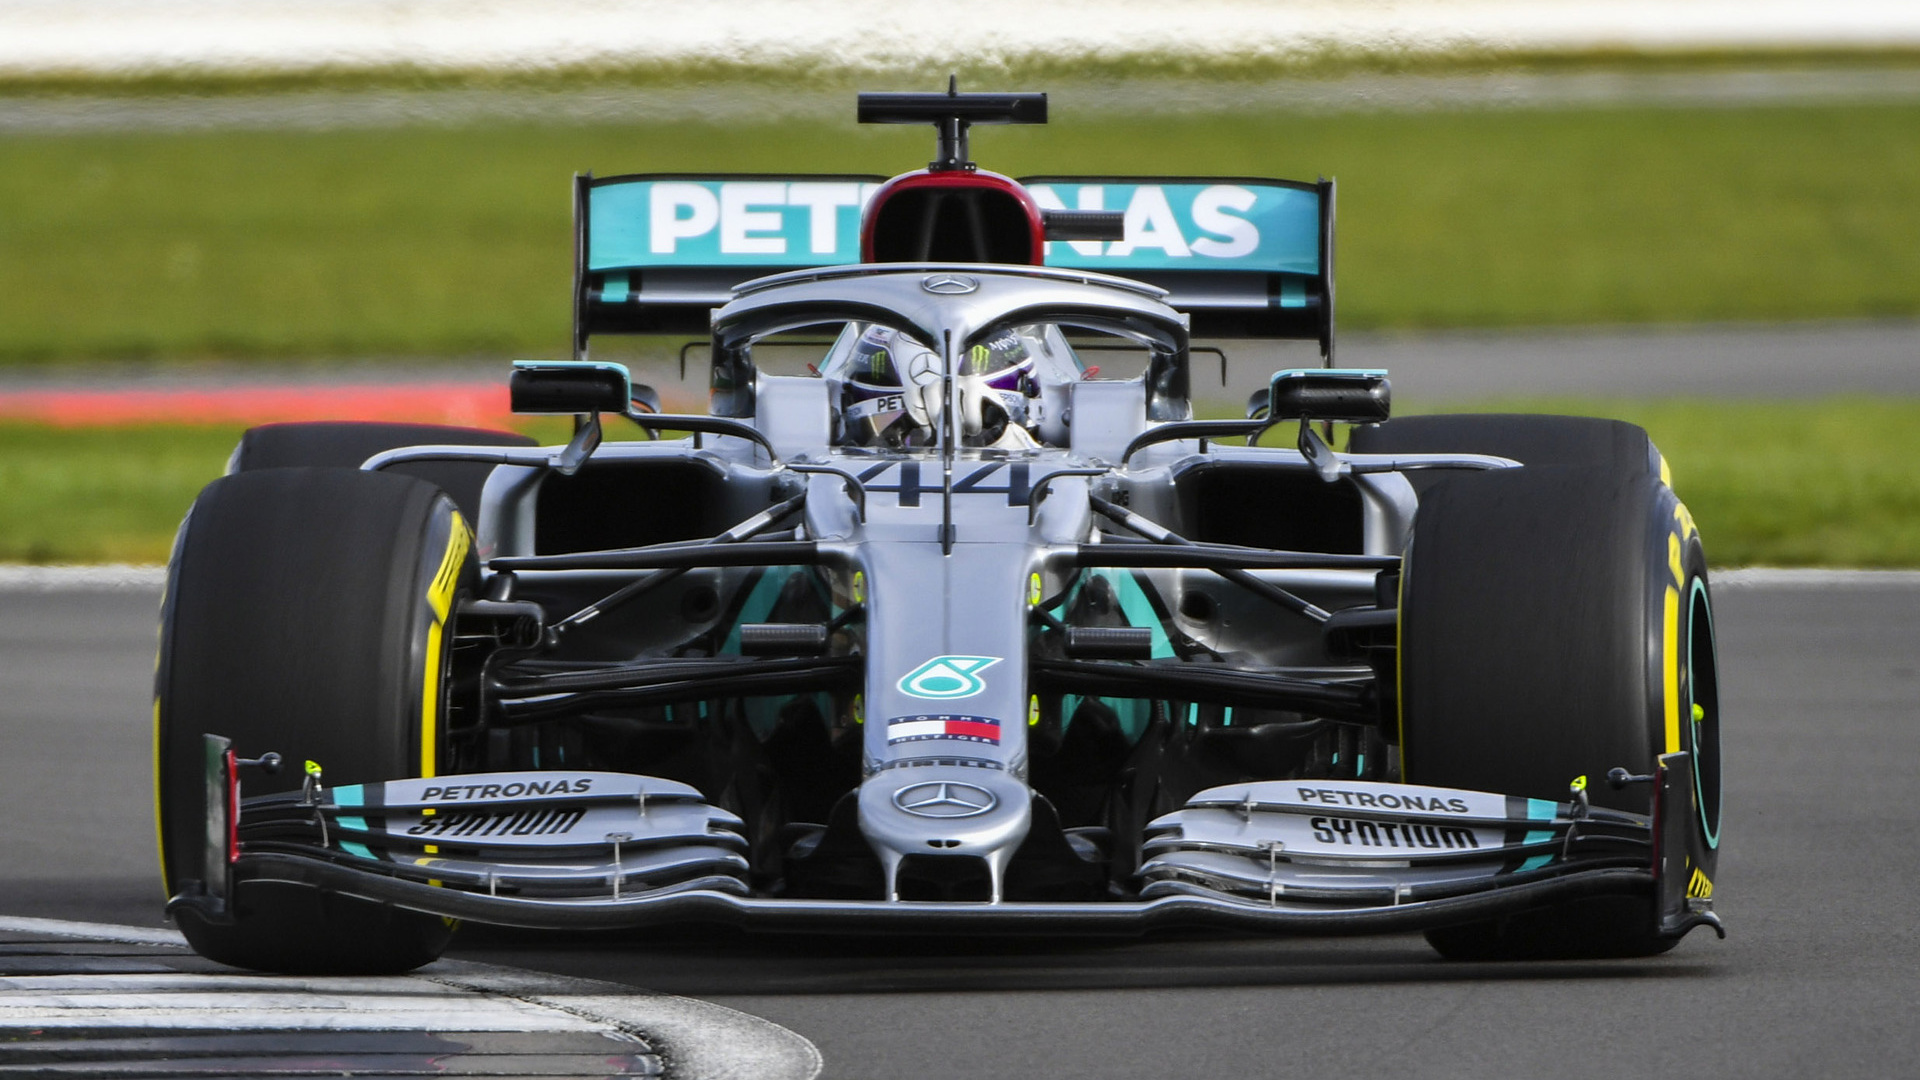 2020 Mercedes AMG F1 W11 EQ Performance   Wallpapers and HD Images 1920x1080